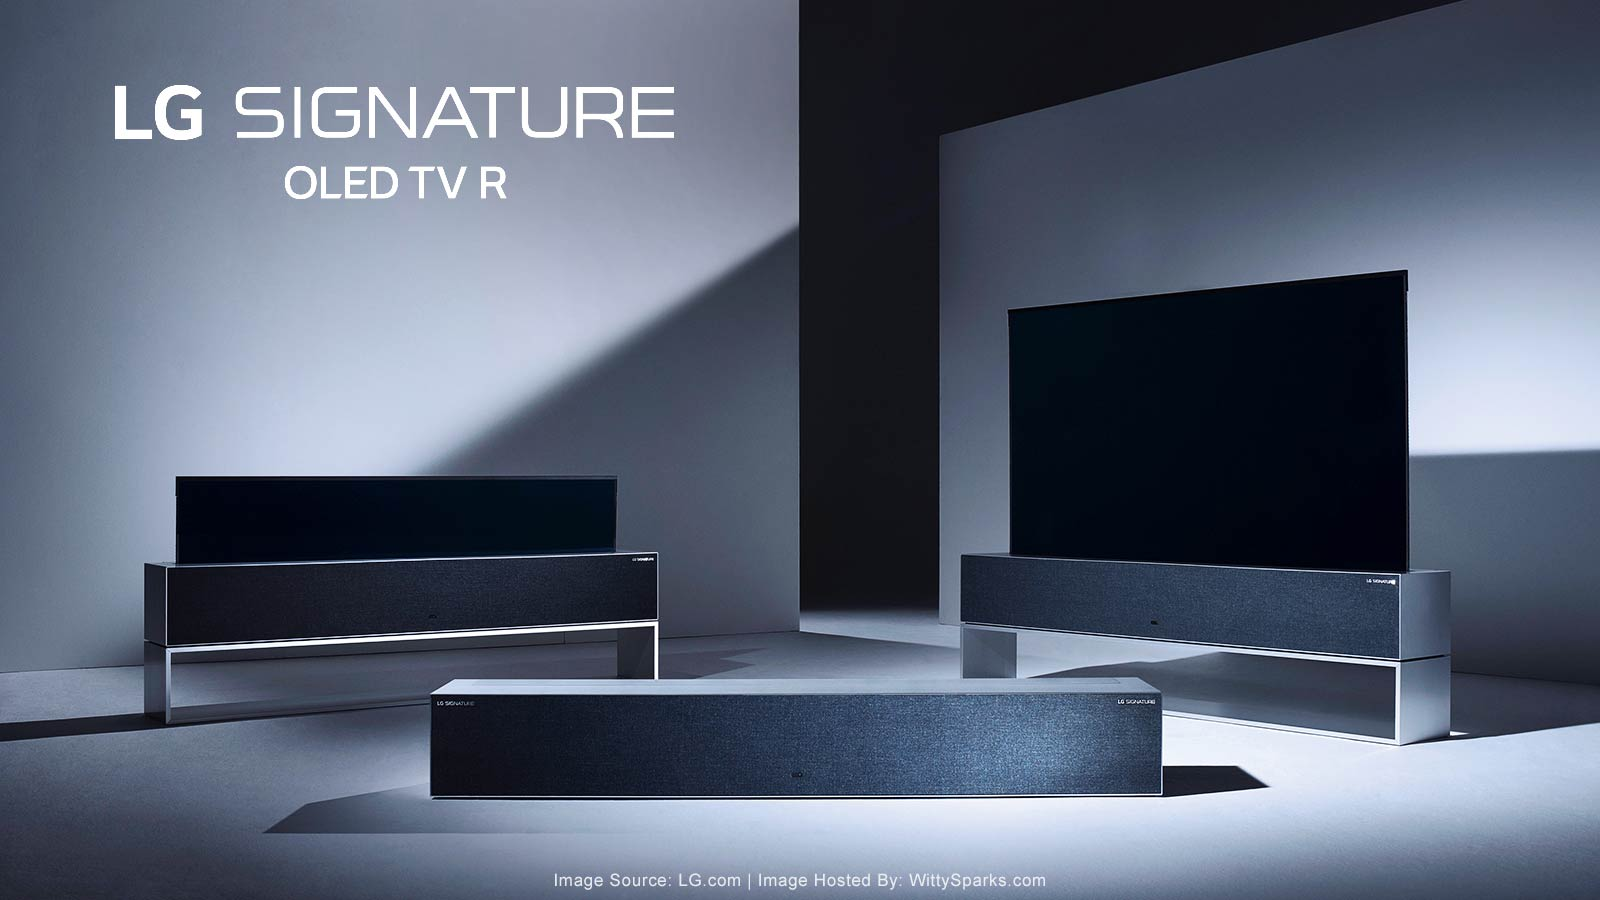 LG Signature Rollable OLED TV R9 - 4K HDR Smart TV